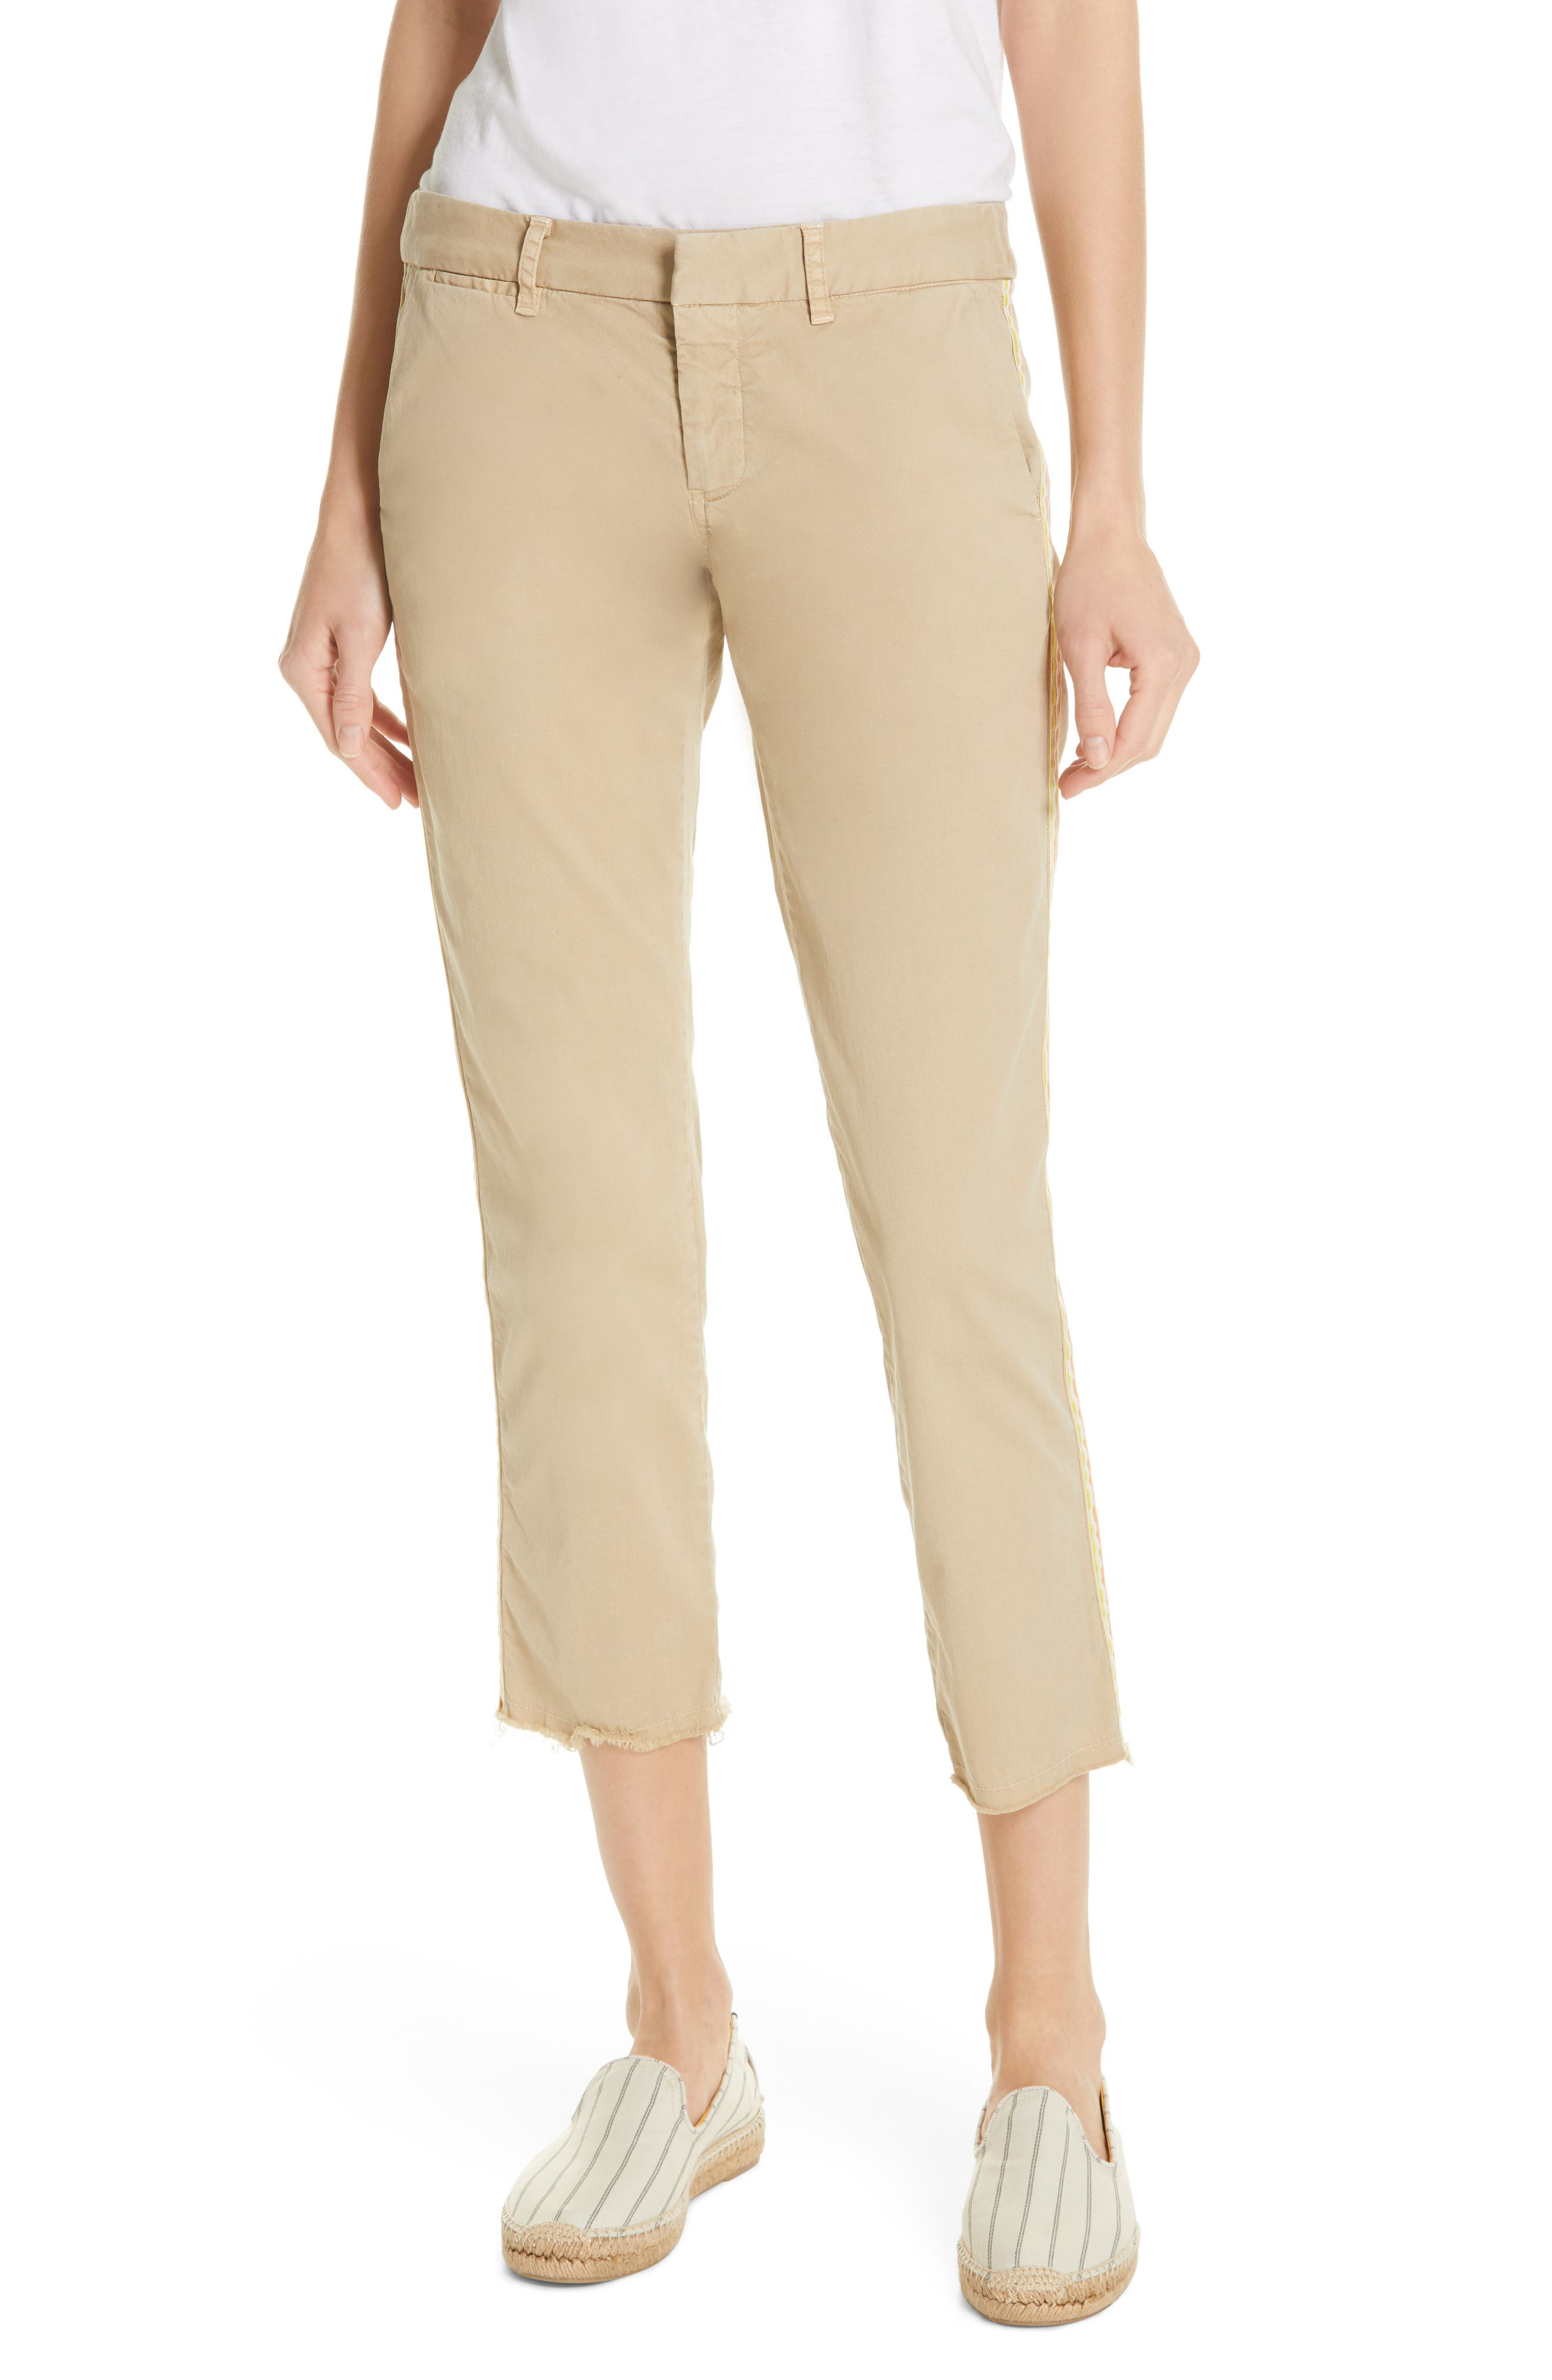 NILI LOTAN East Hampton Side Tape Crop Pants, Main, color, DESRT SAND ORANGE/ YELLOW TAPE